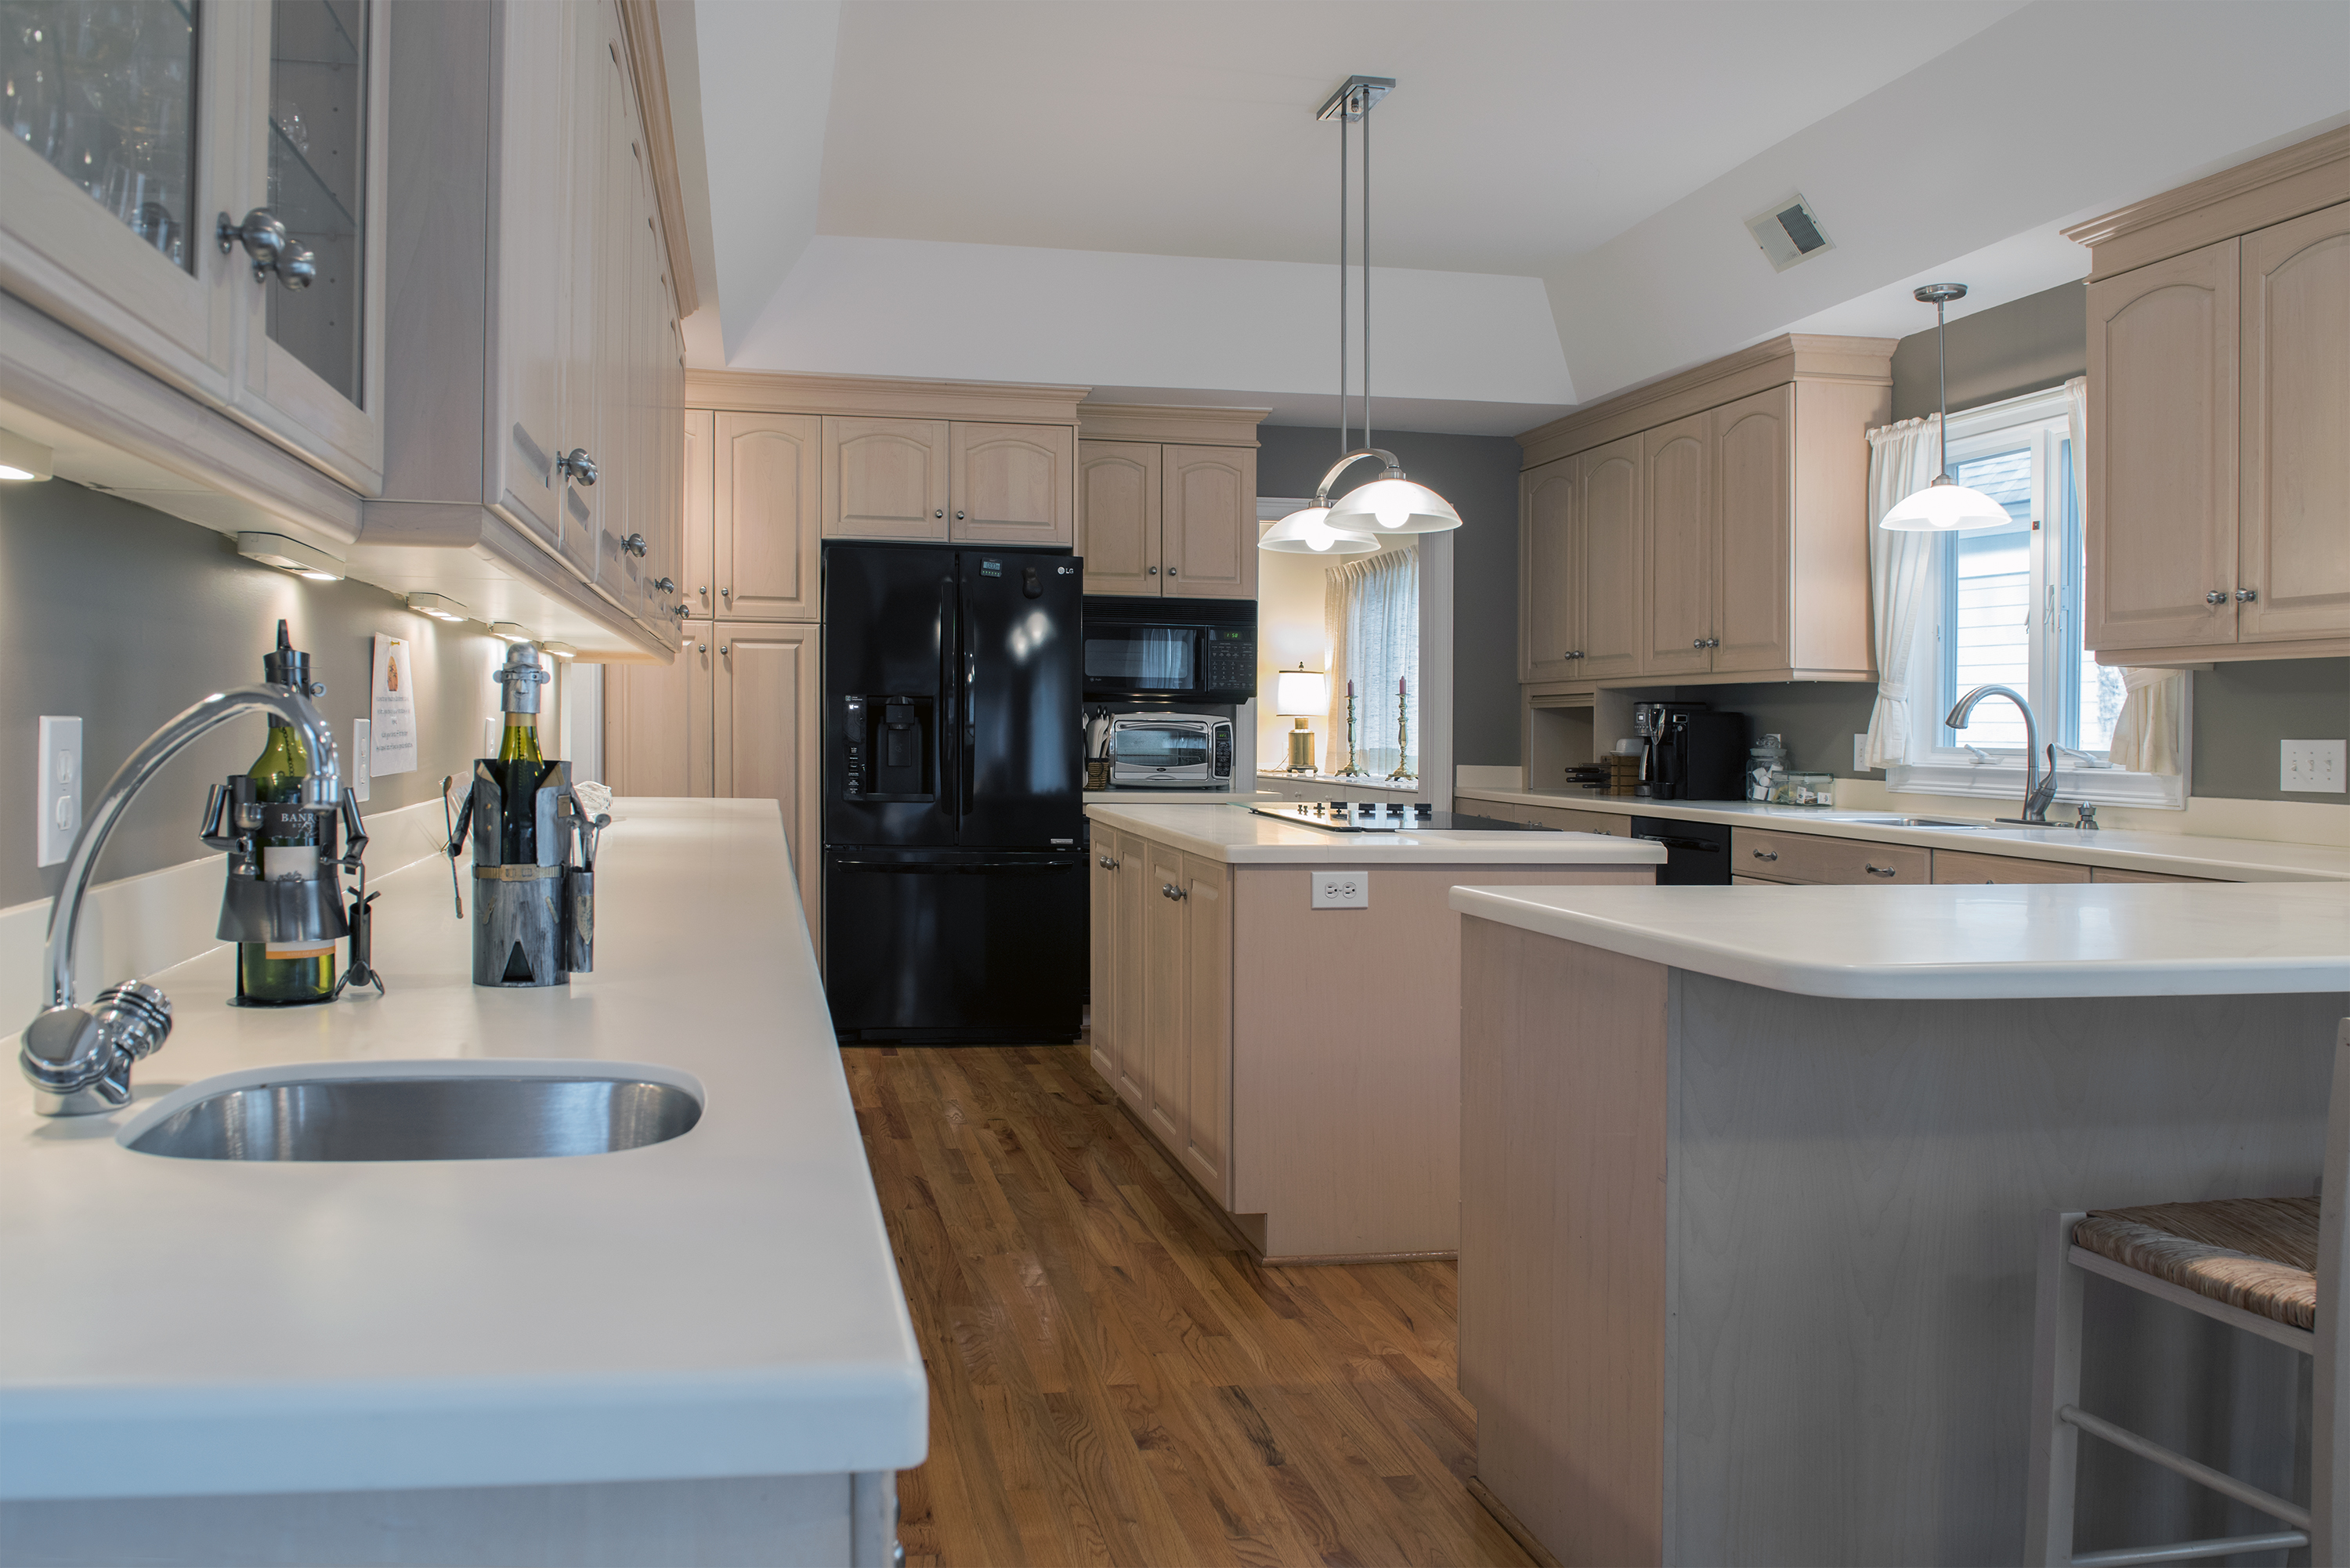 This spacious kitchen is well stocked.